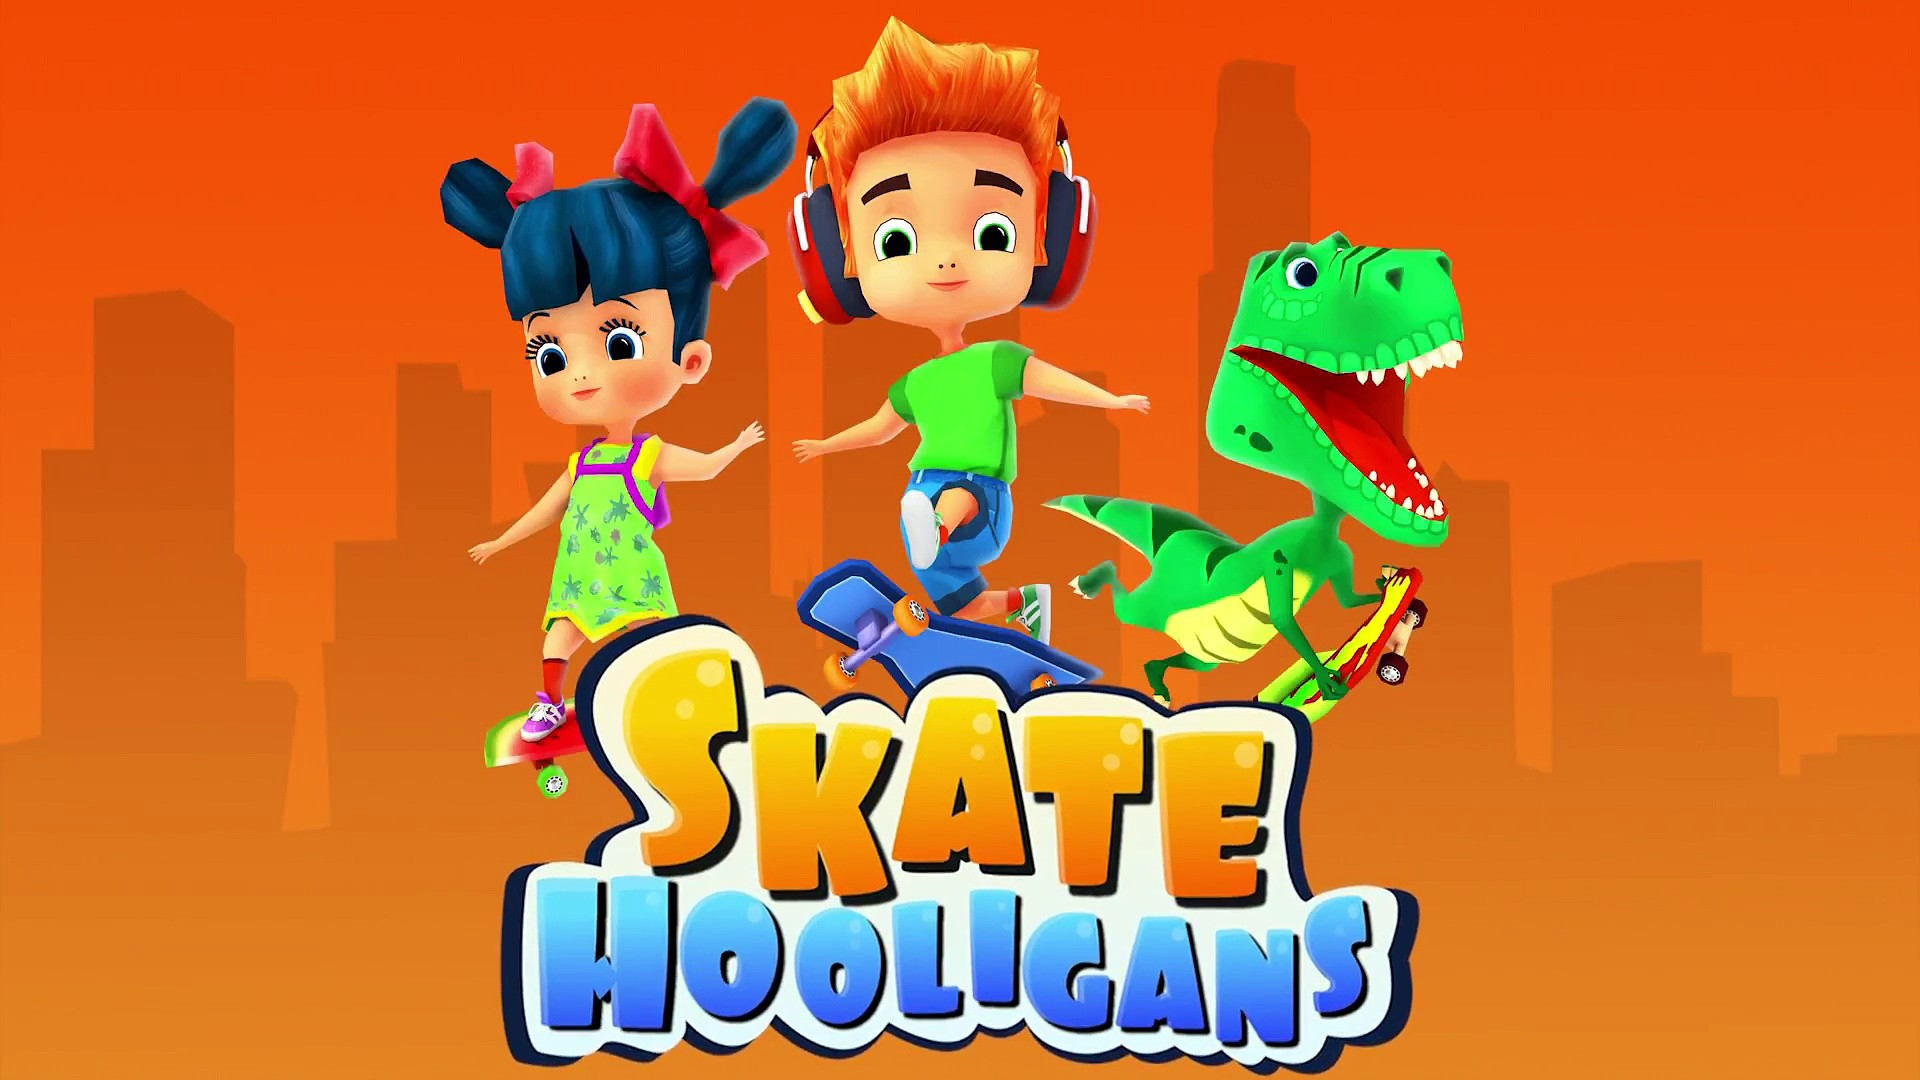 Skate Hooligans: A new look of subway surfers on web